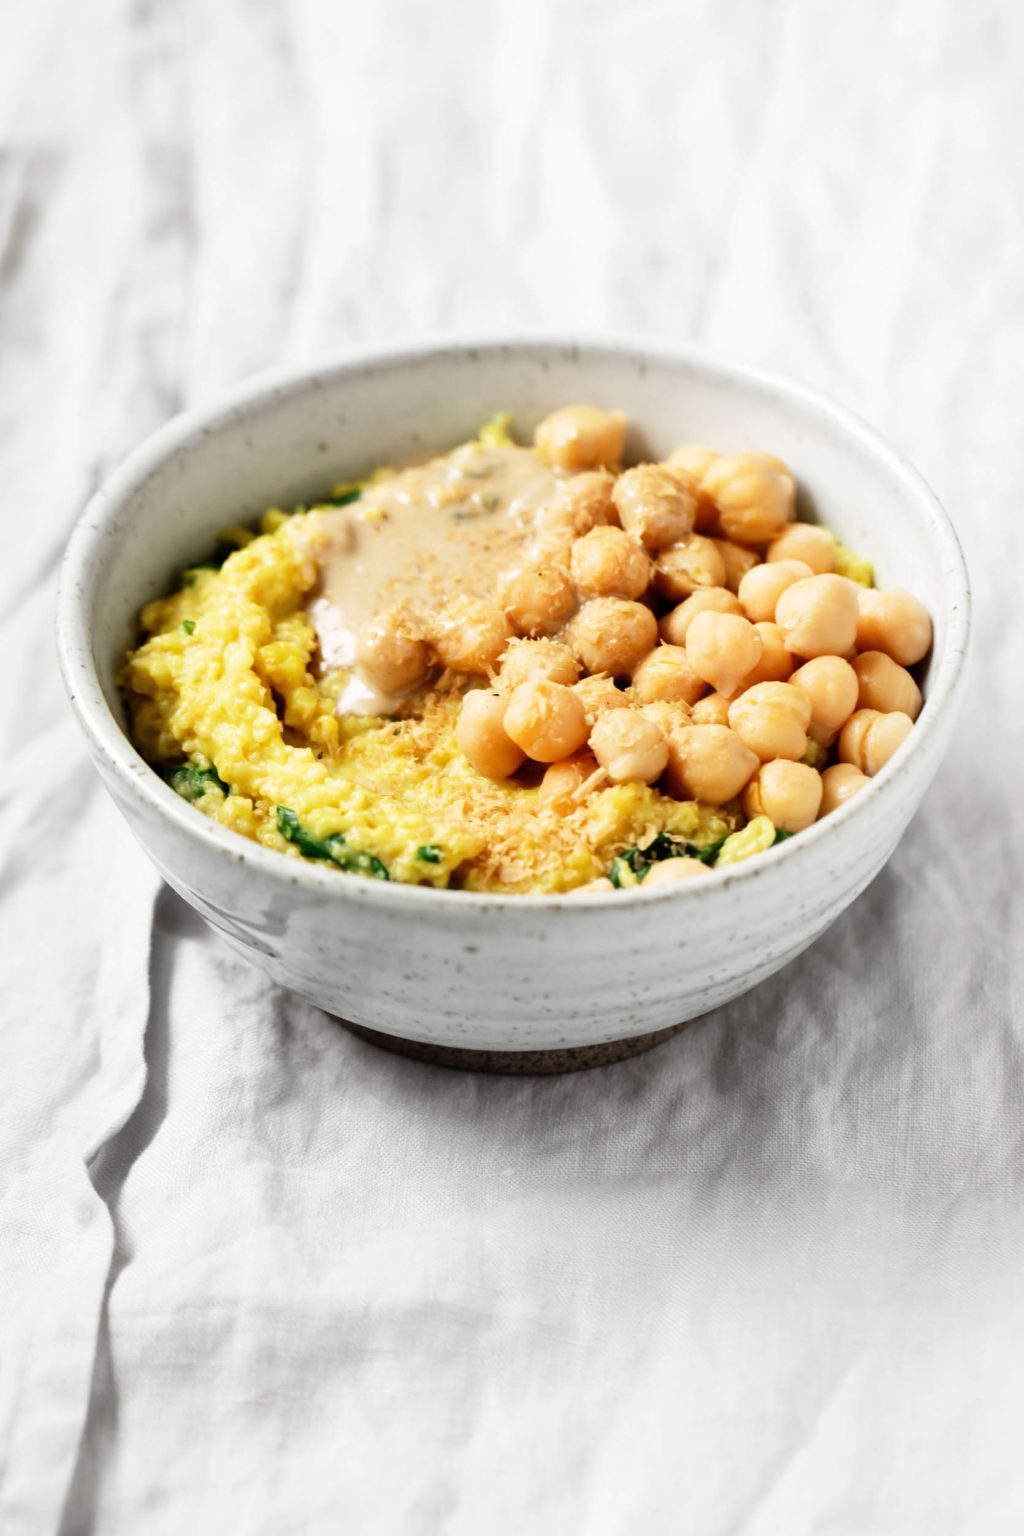 A gray and white ceramic bowl holds a dish of savory oatmeal made with chickpeas and spinach. It has been topped with a spoonful of tahini.